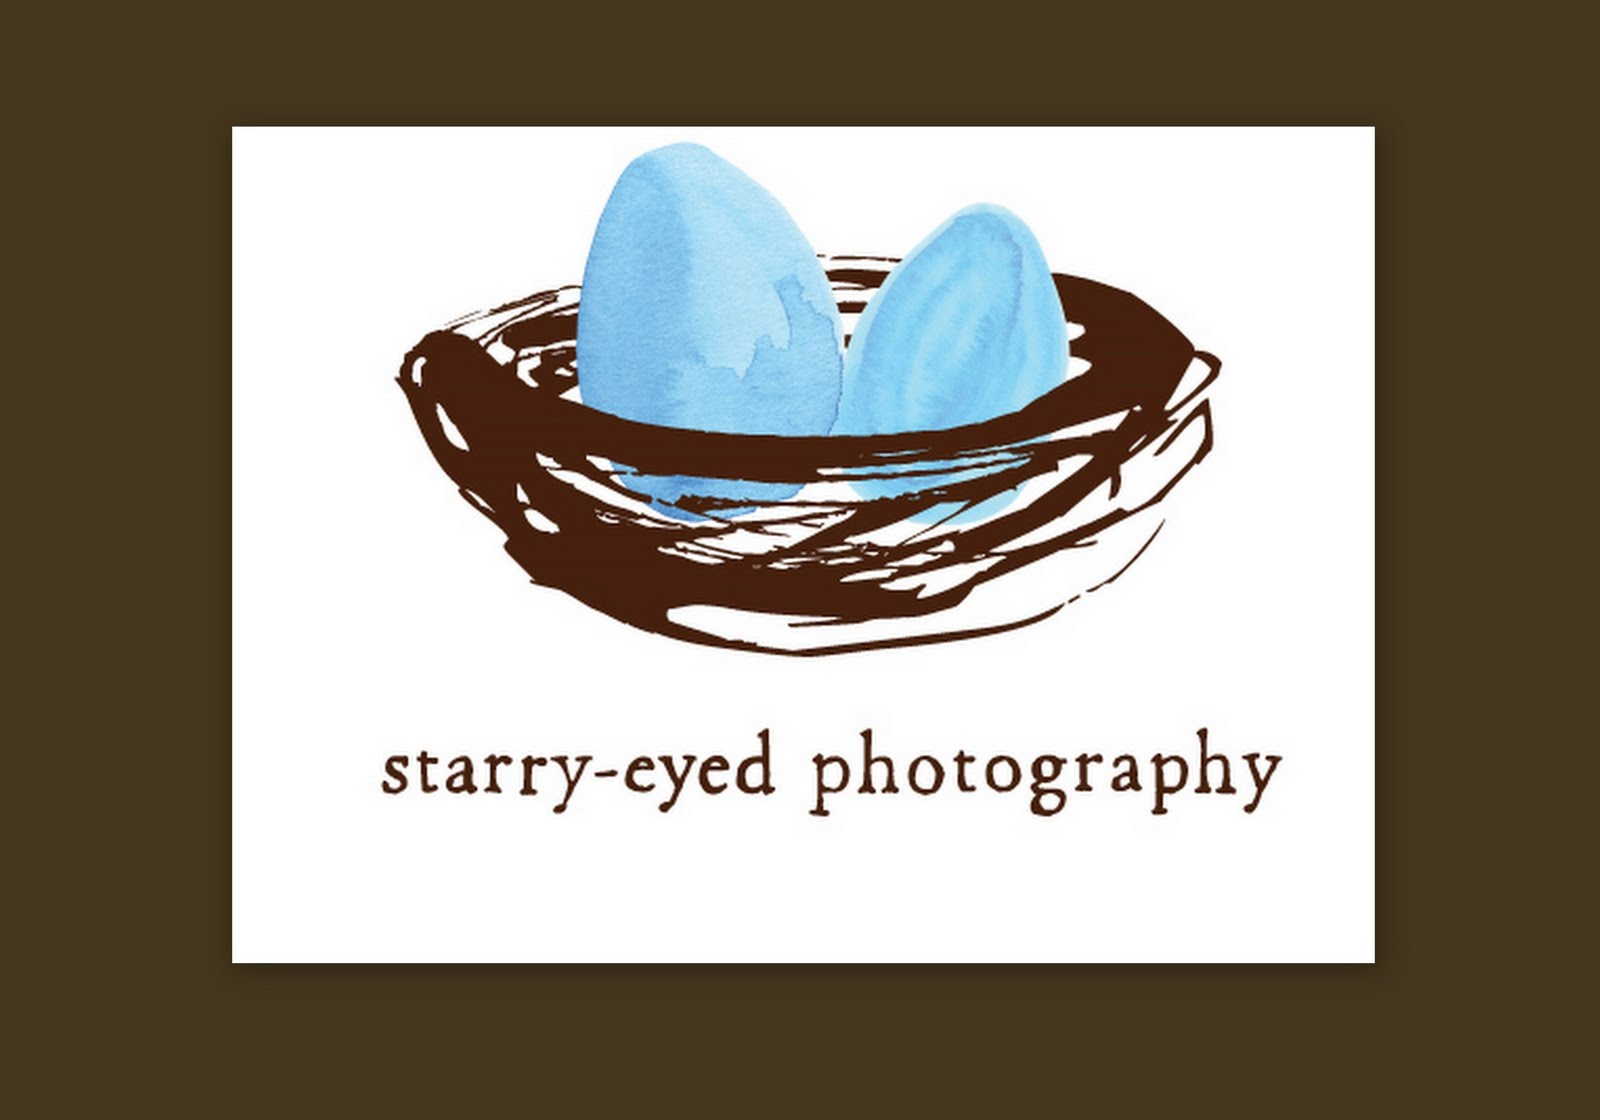 starry eyed photography